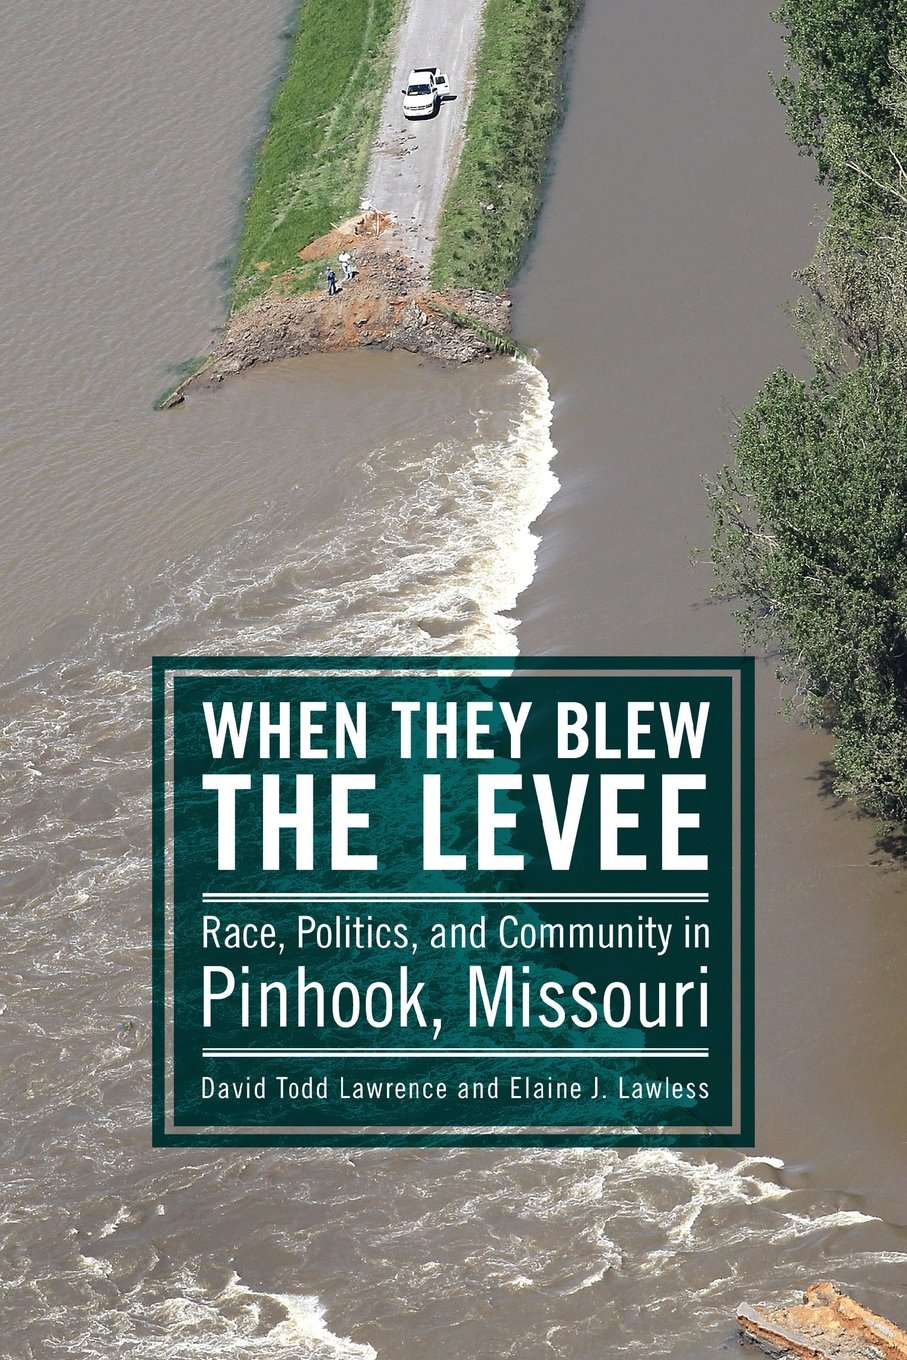 Cover to the book 'When They Blew the Levee: Race, Politics, and Community in Pinhook, Missouri' by David Todd Lawrence and Elaine J. Lawless.